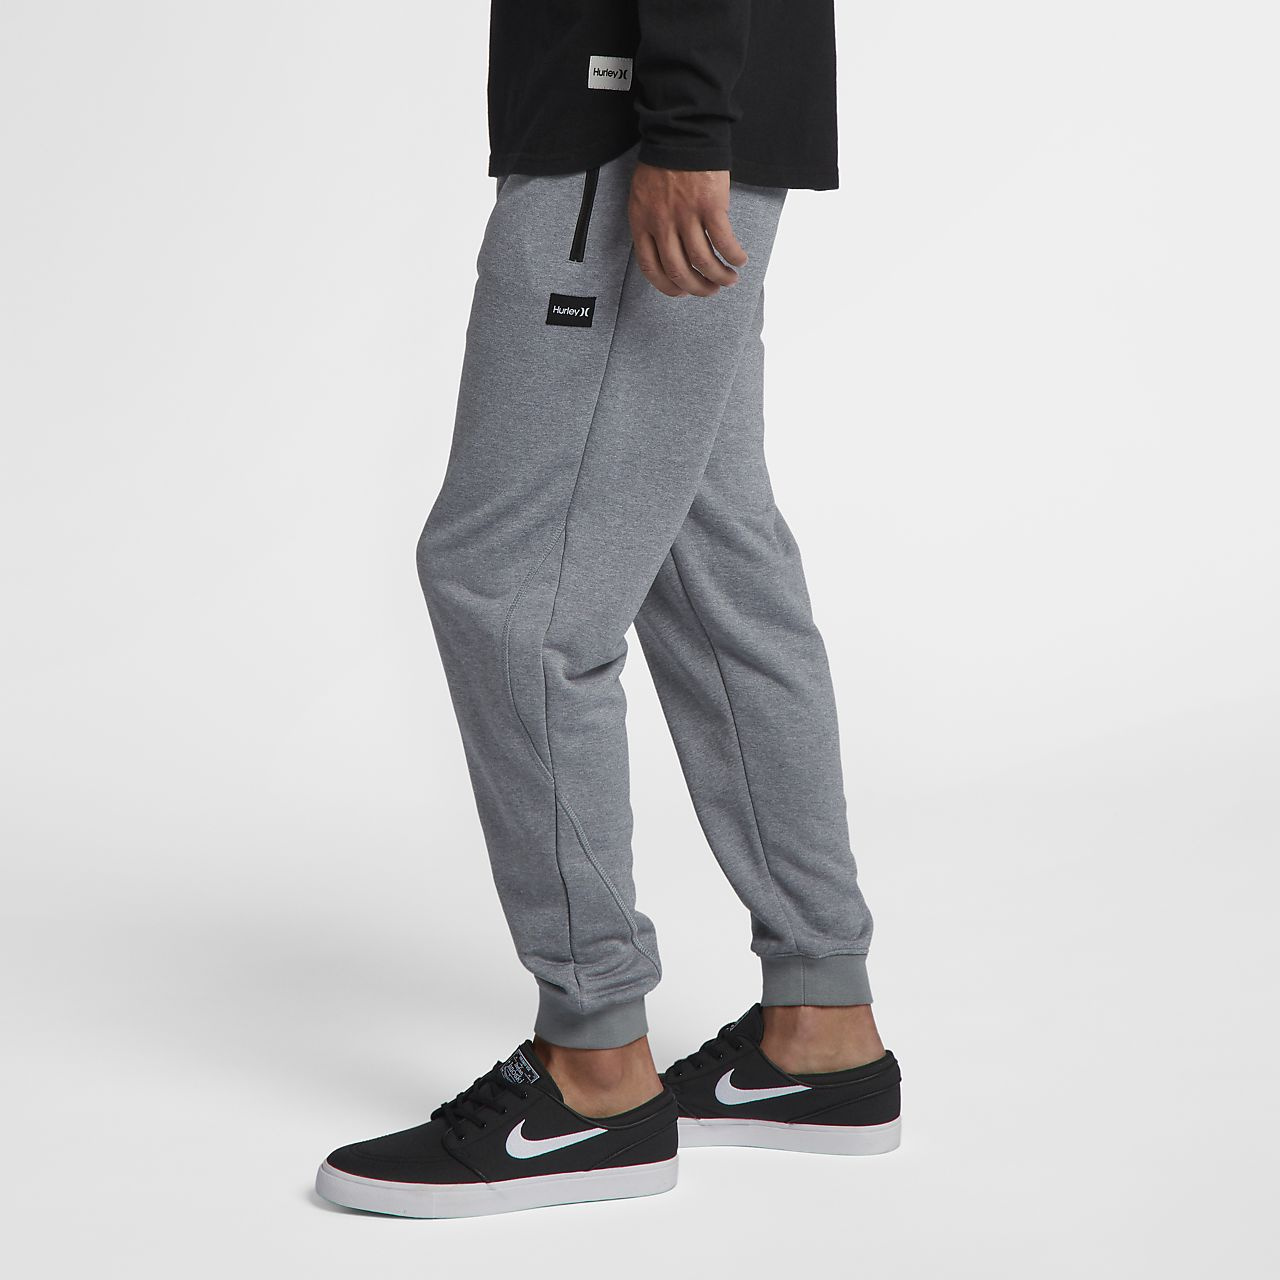 Herre Tech Fleece Bukser og tights. Nike NO